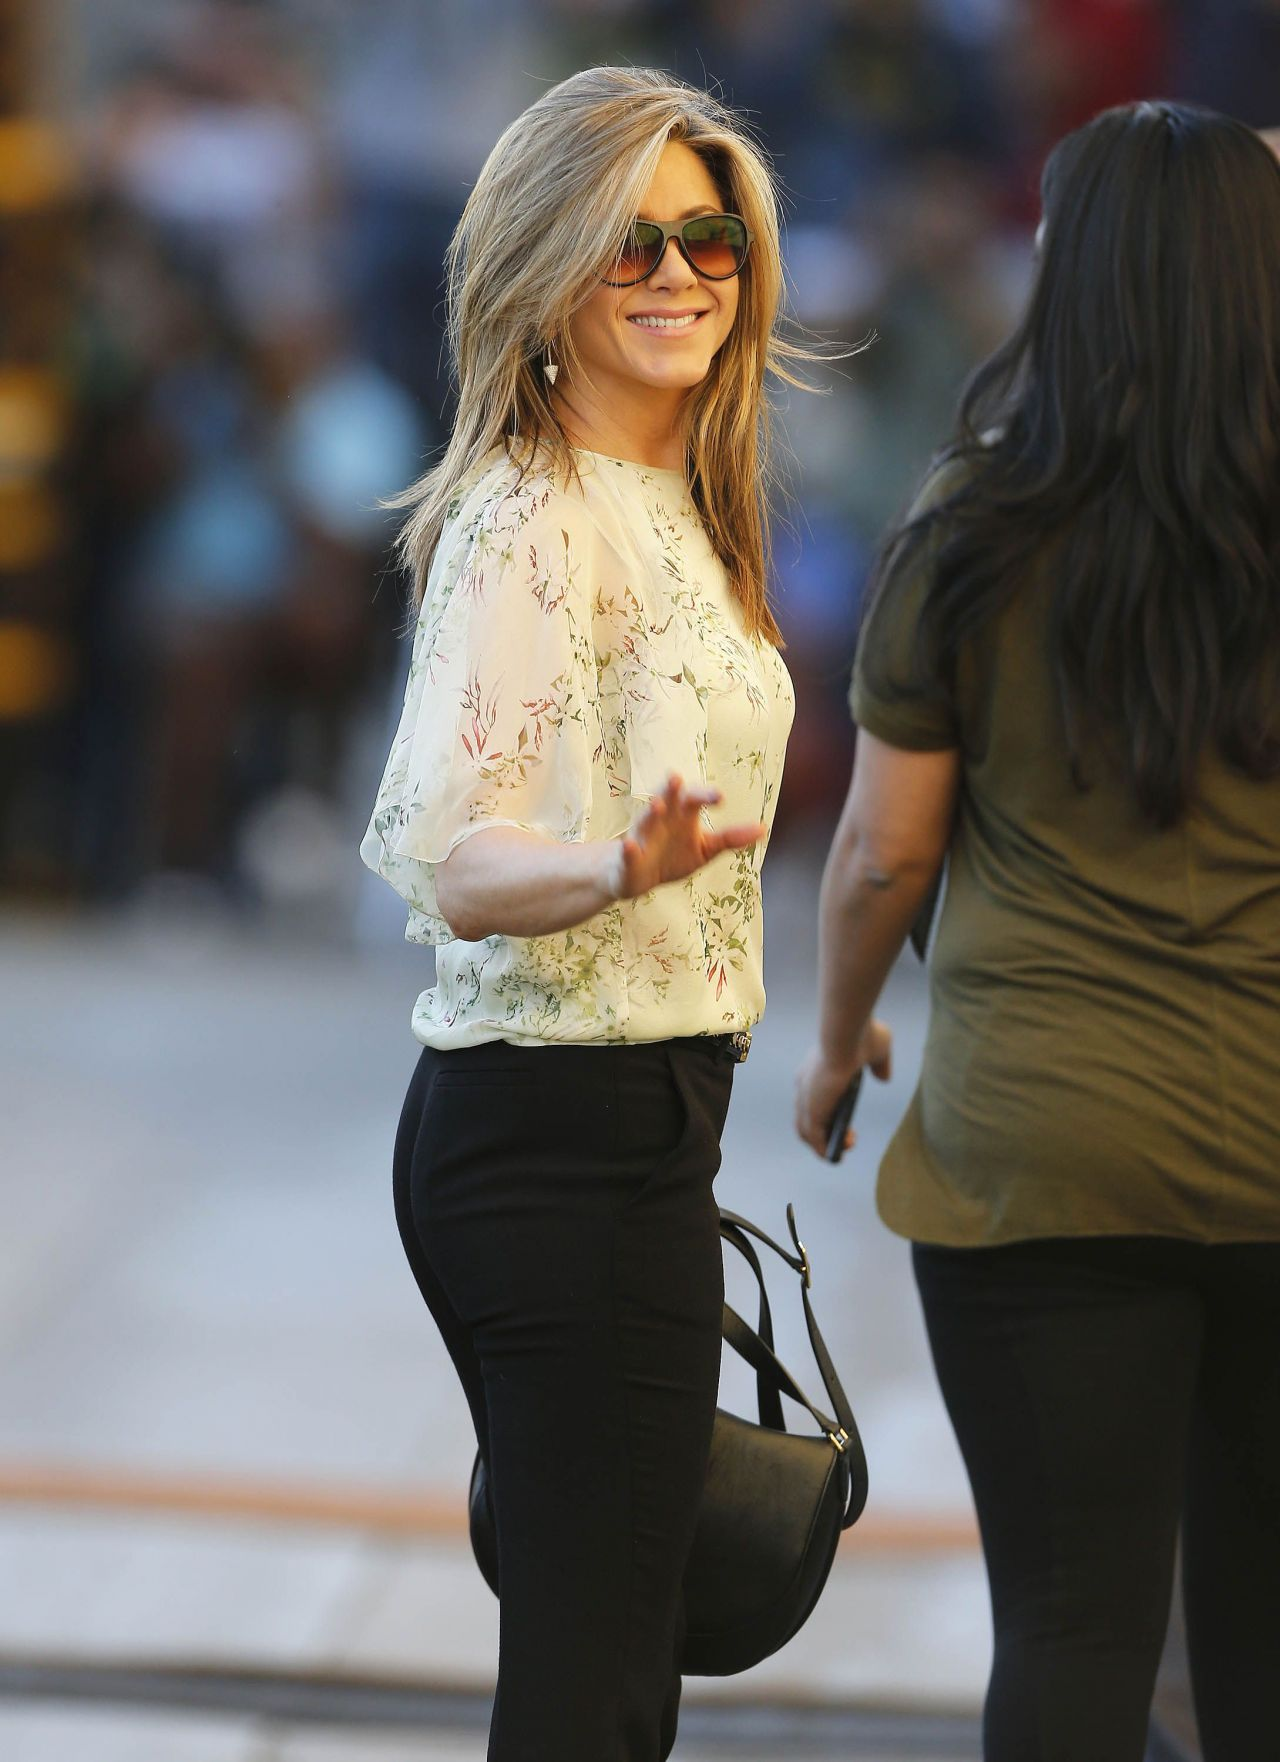 Jennifer Aniston Style Arriving To Appear On Jimmy